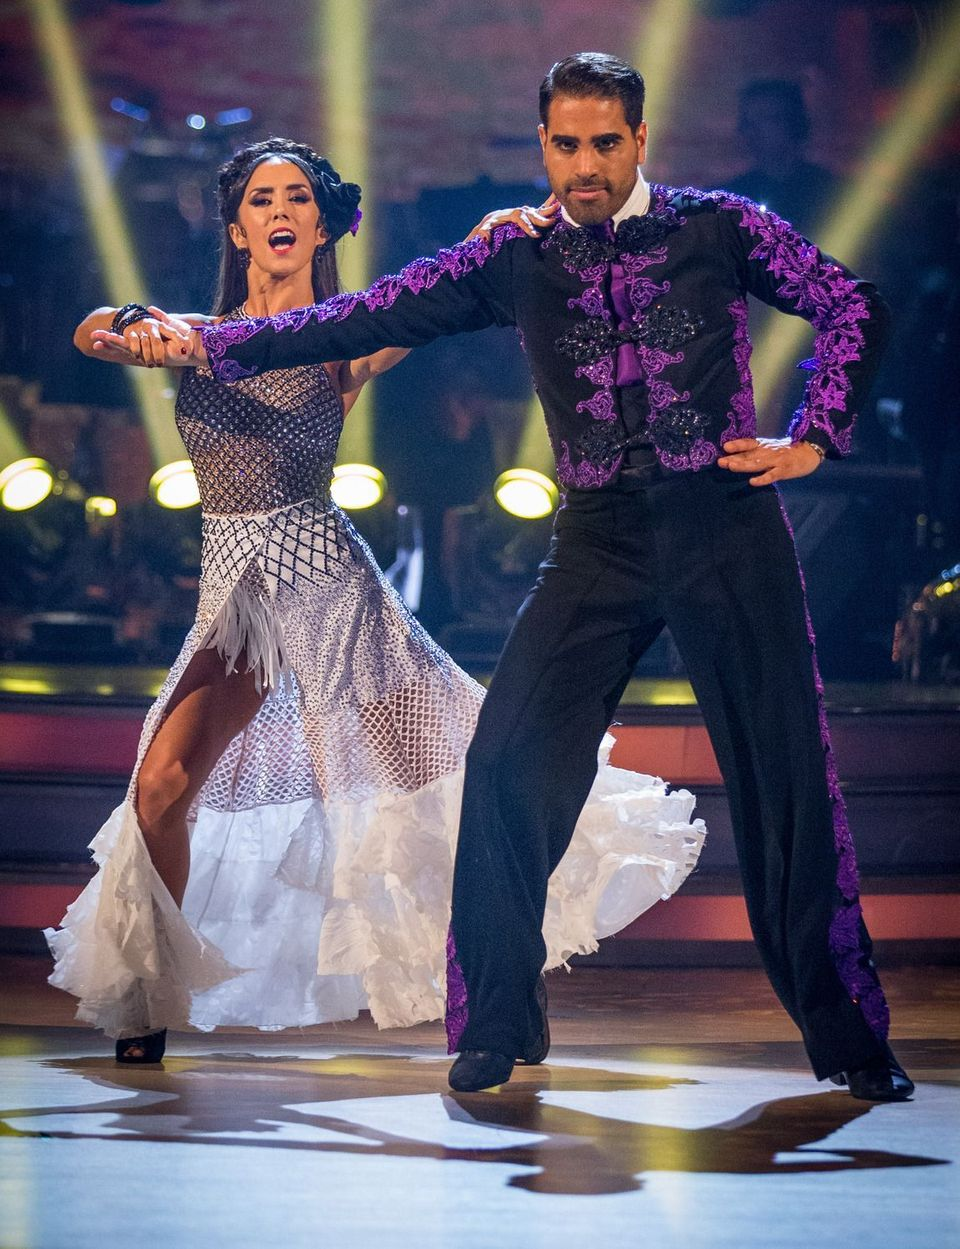 Ranj on the Strictly floor with partner Janette